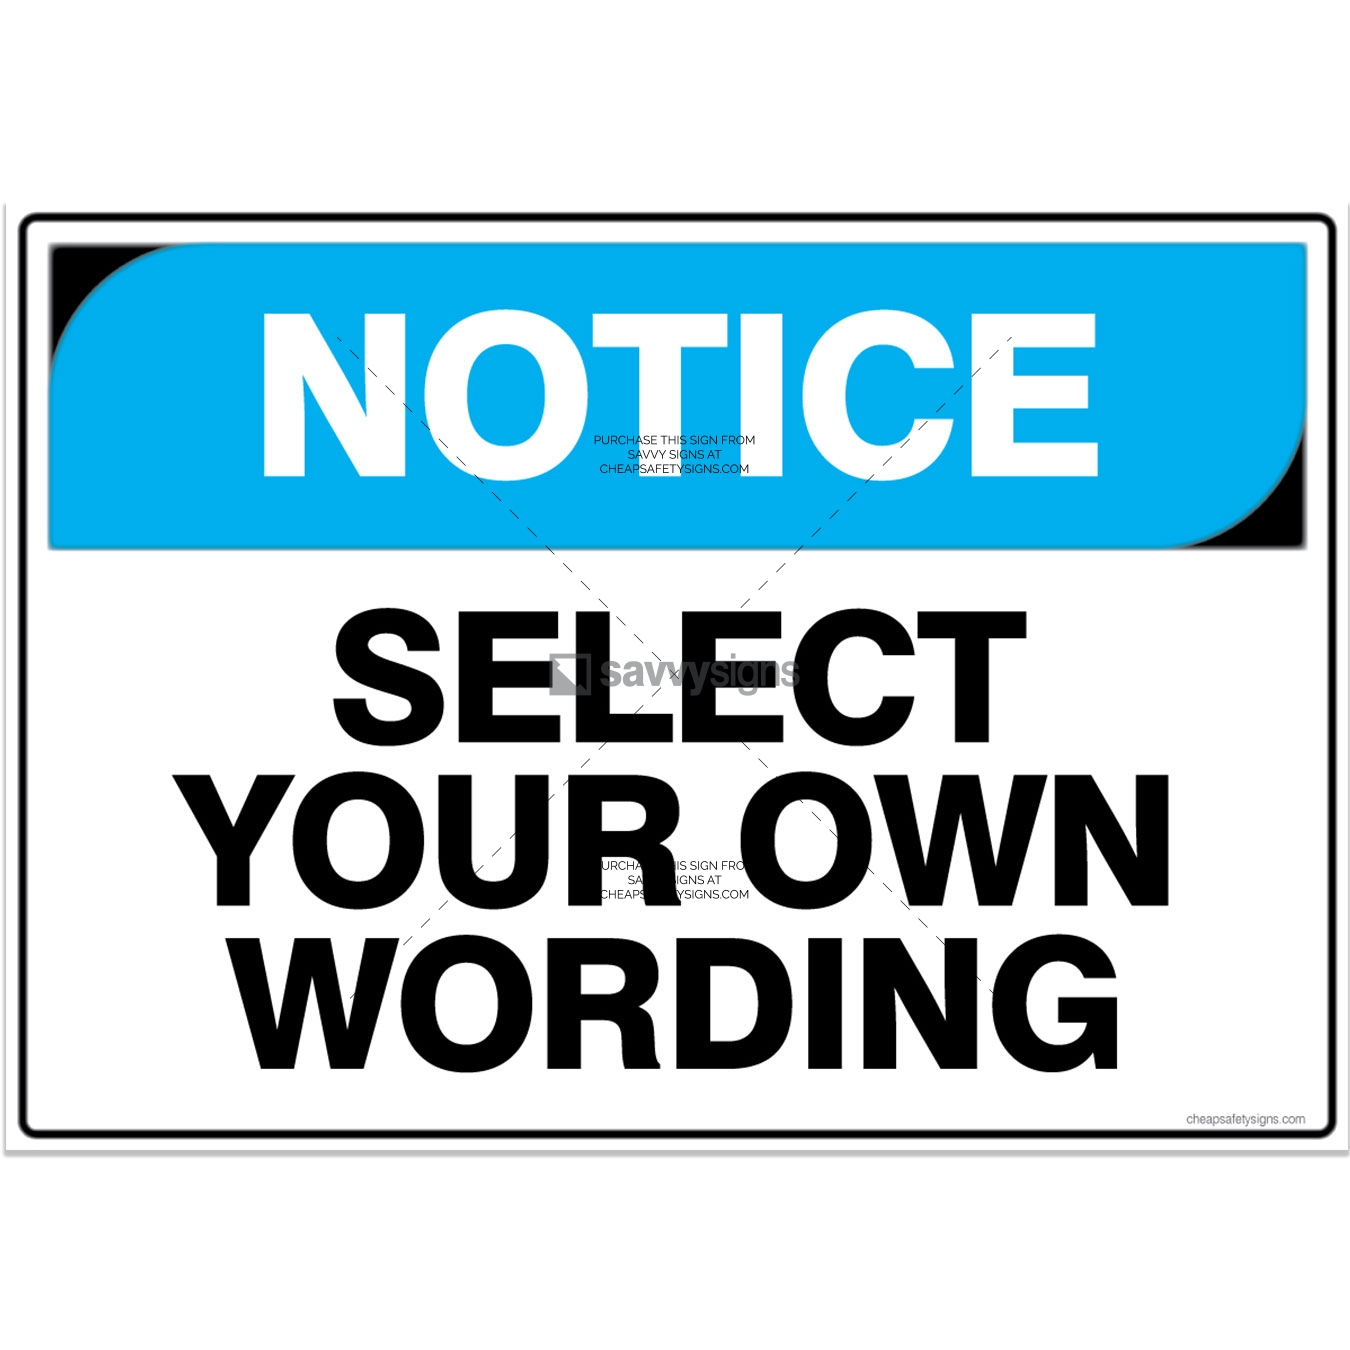 SSNO3L000-Notice-Select-Your-Own-Wording-Workplace-Safety-Signs-savvysigns